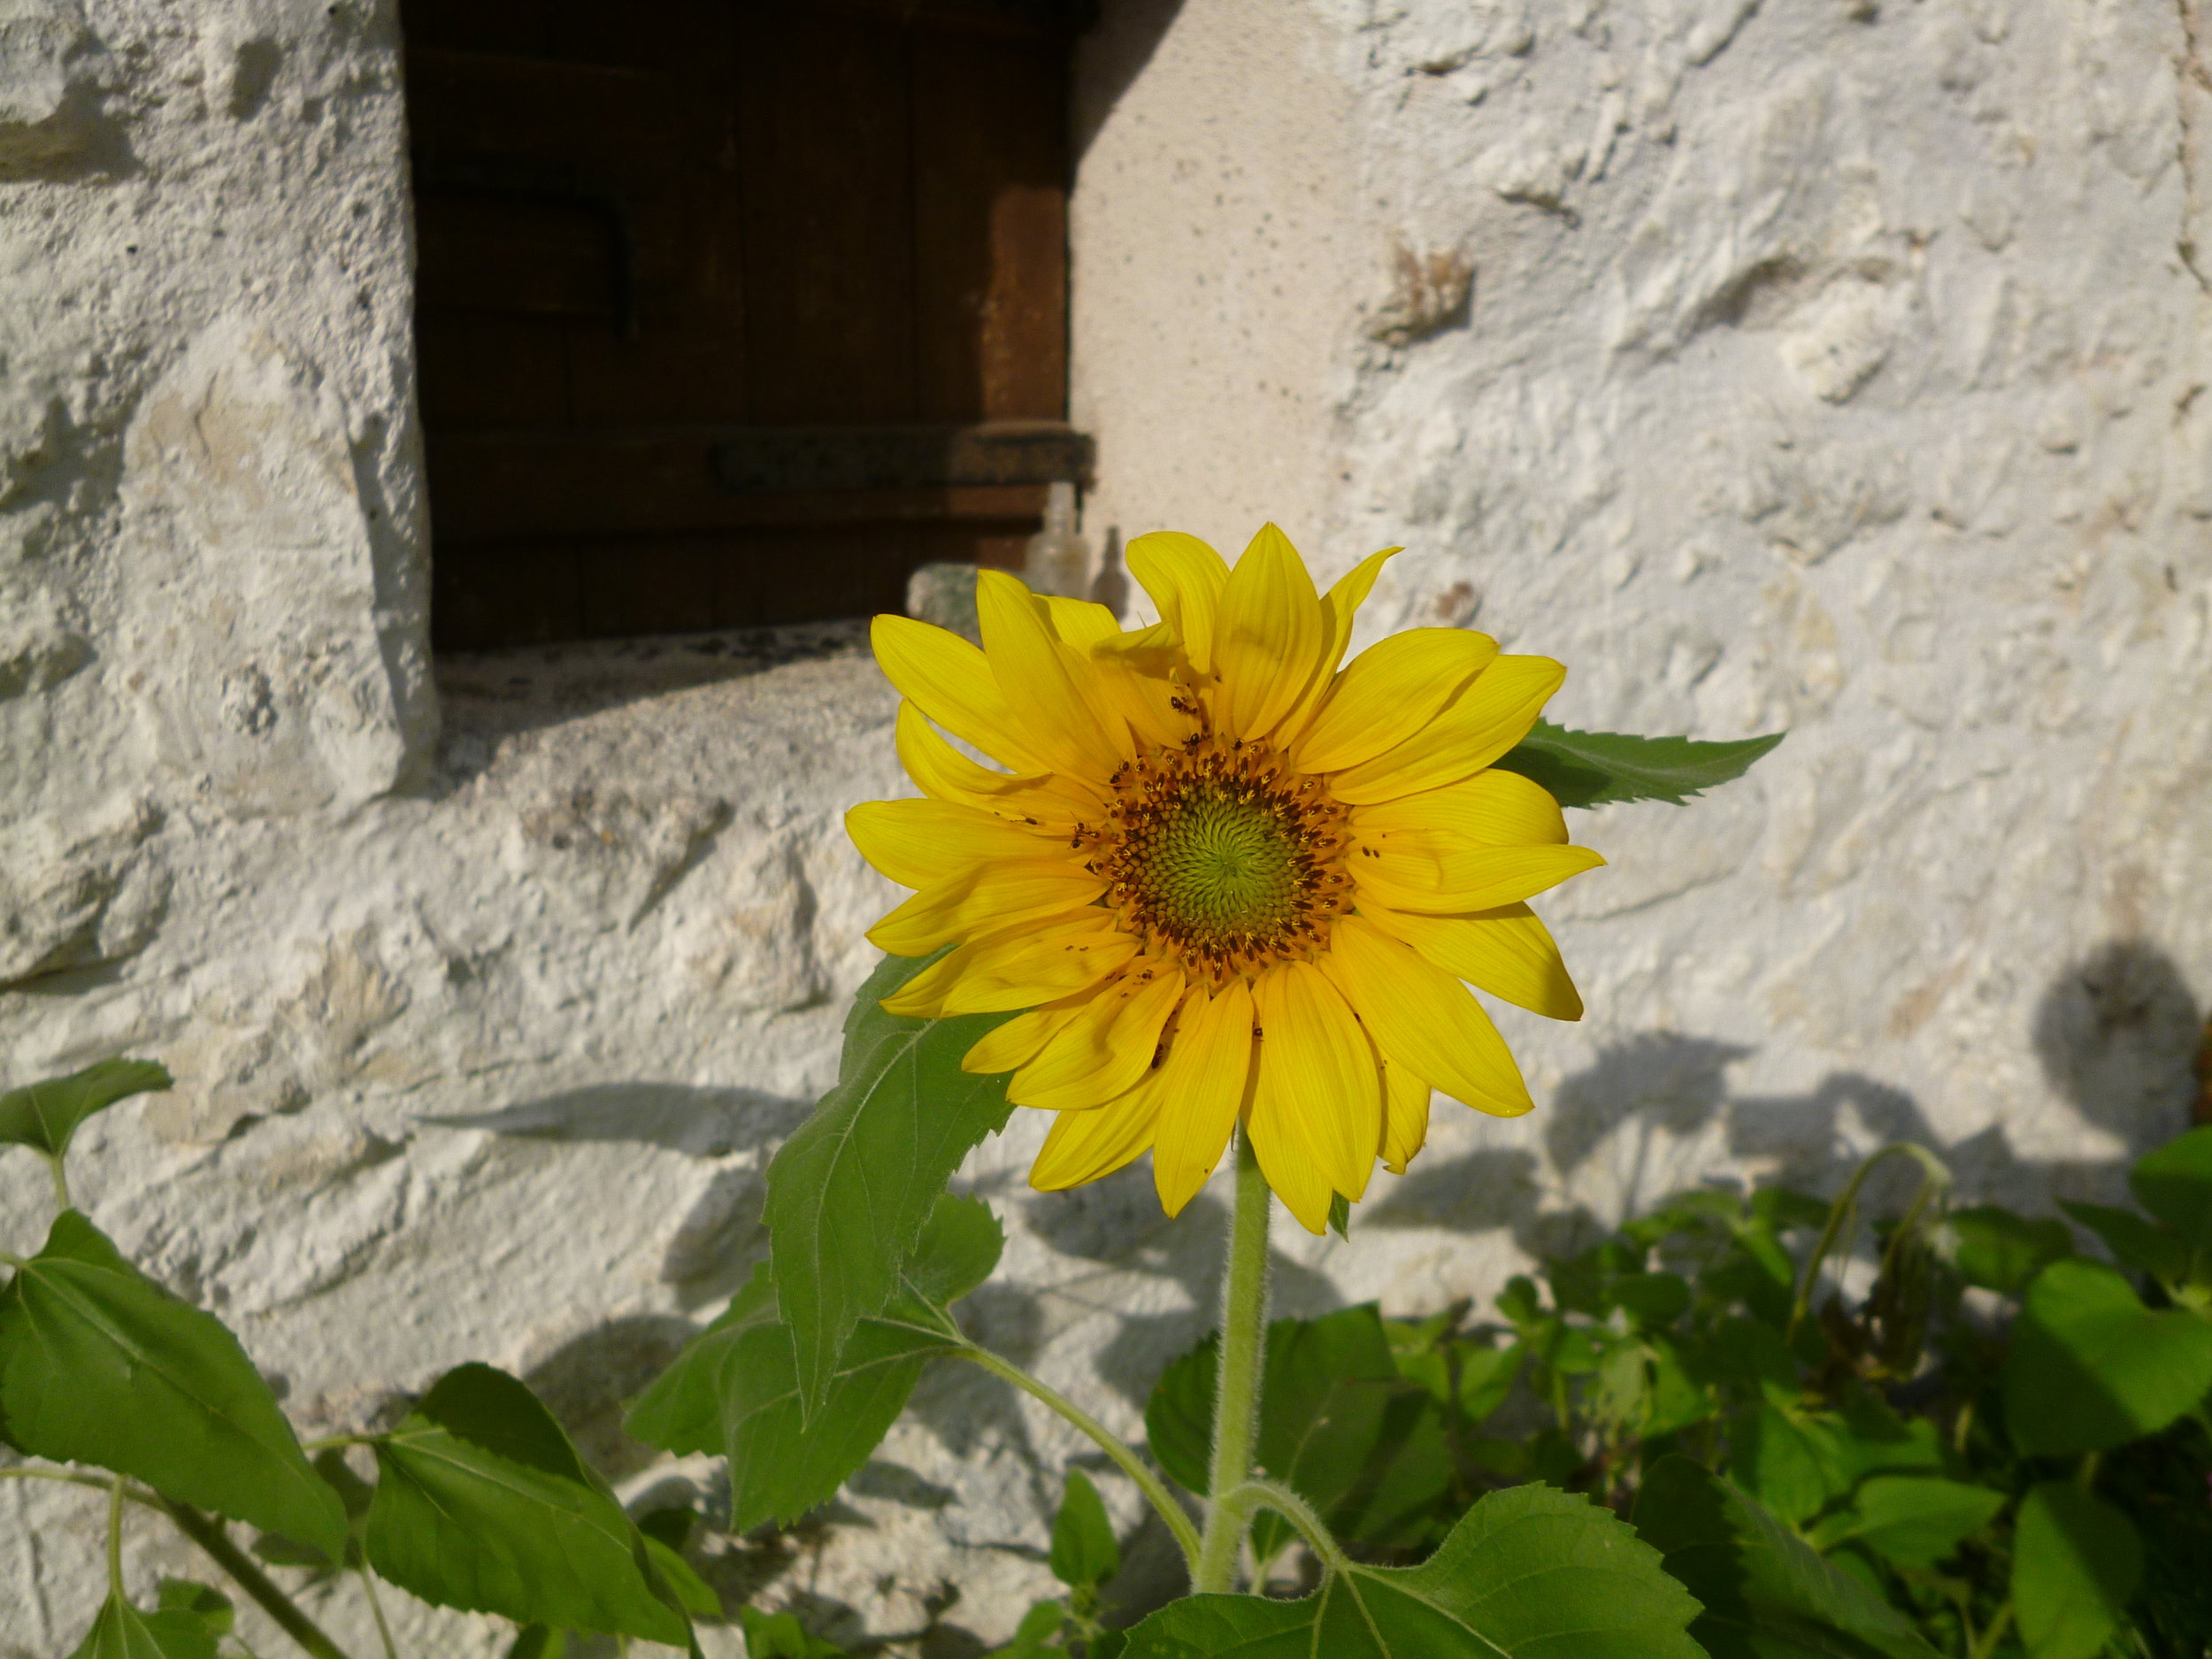 Our very own sunflower. Some of the seeds bought for the birds fell into the planting trough and this is what we got!